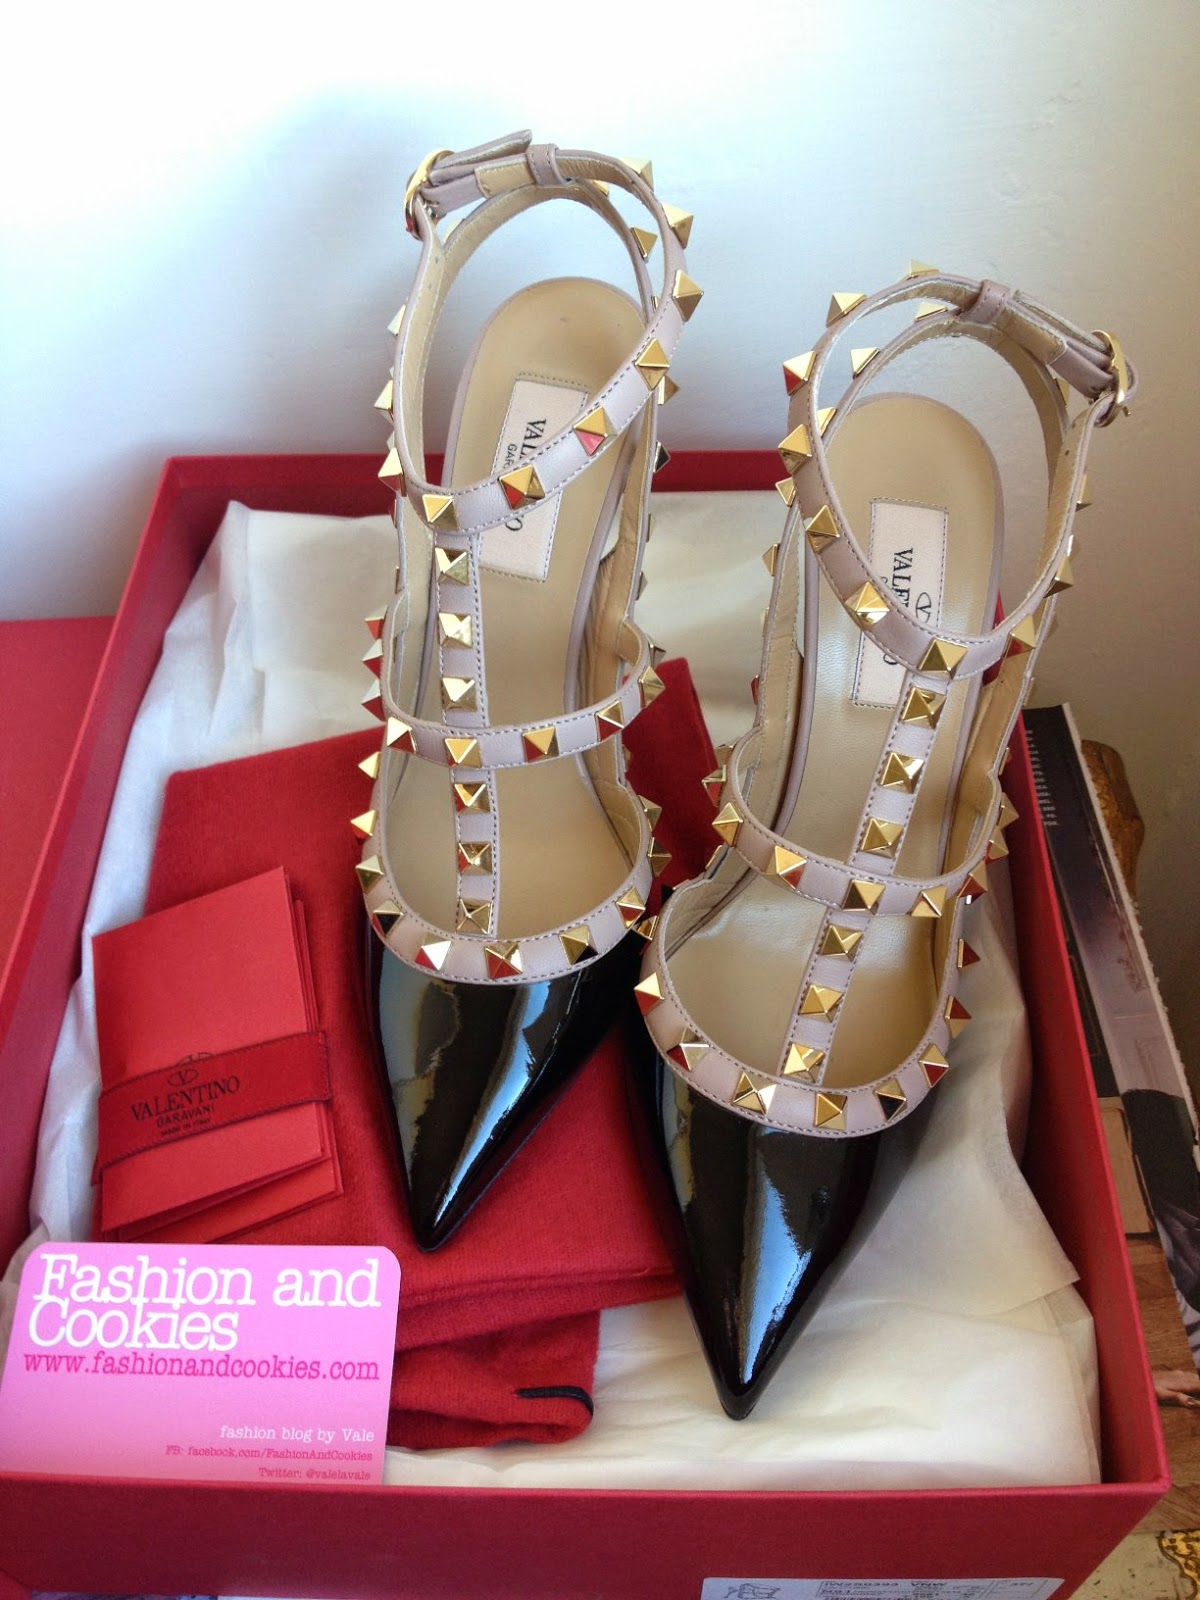 Valentino Rockstud pumps, Valentino Rockstud review, Valentino Rockstud patent leather, Fashion and Cookies fashion blog, fashion blogger